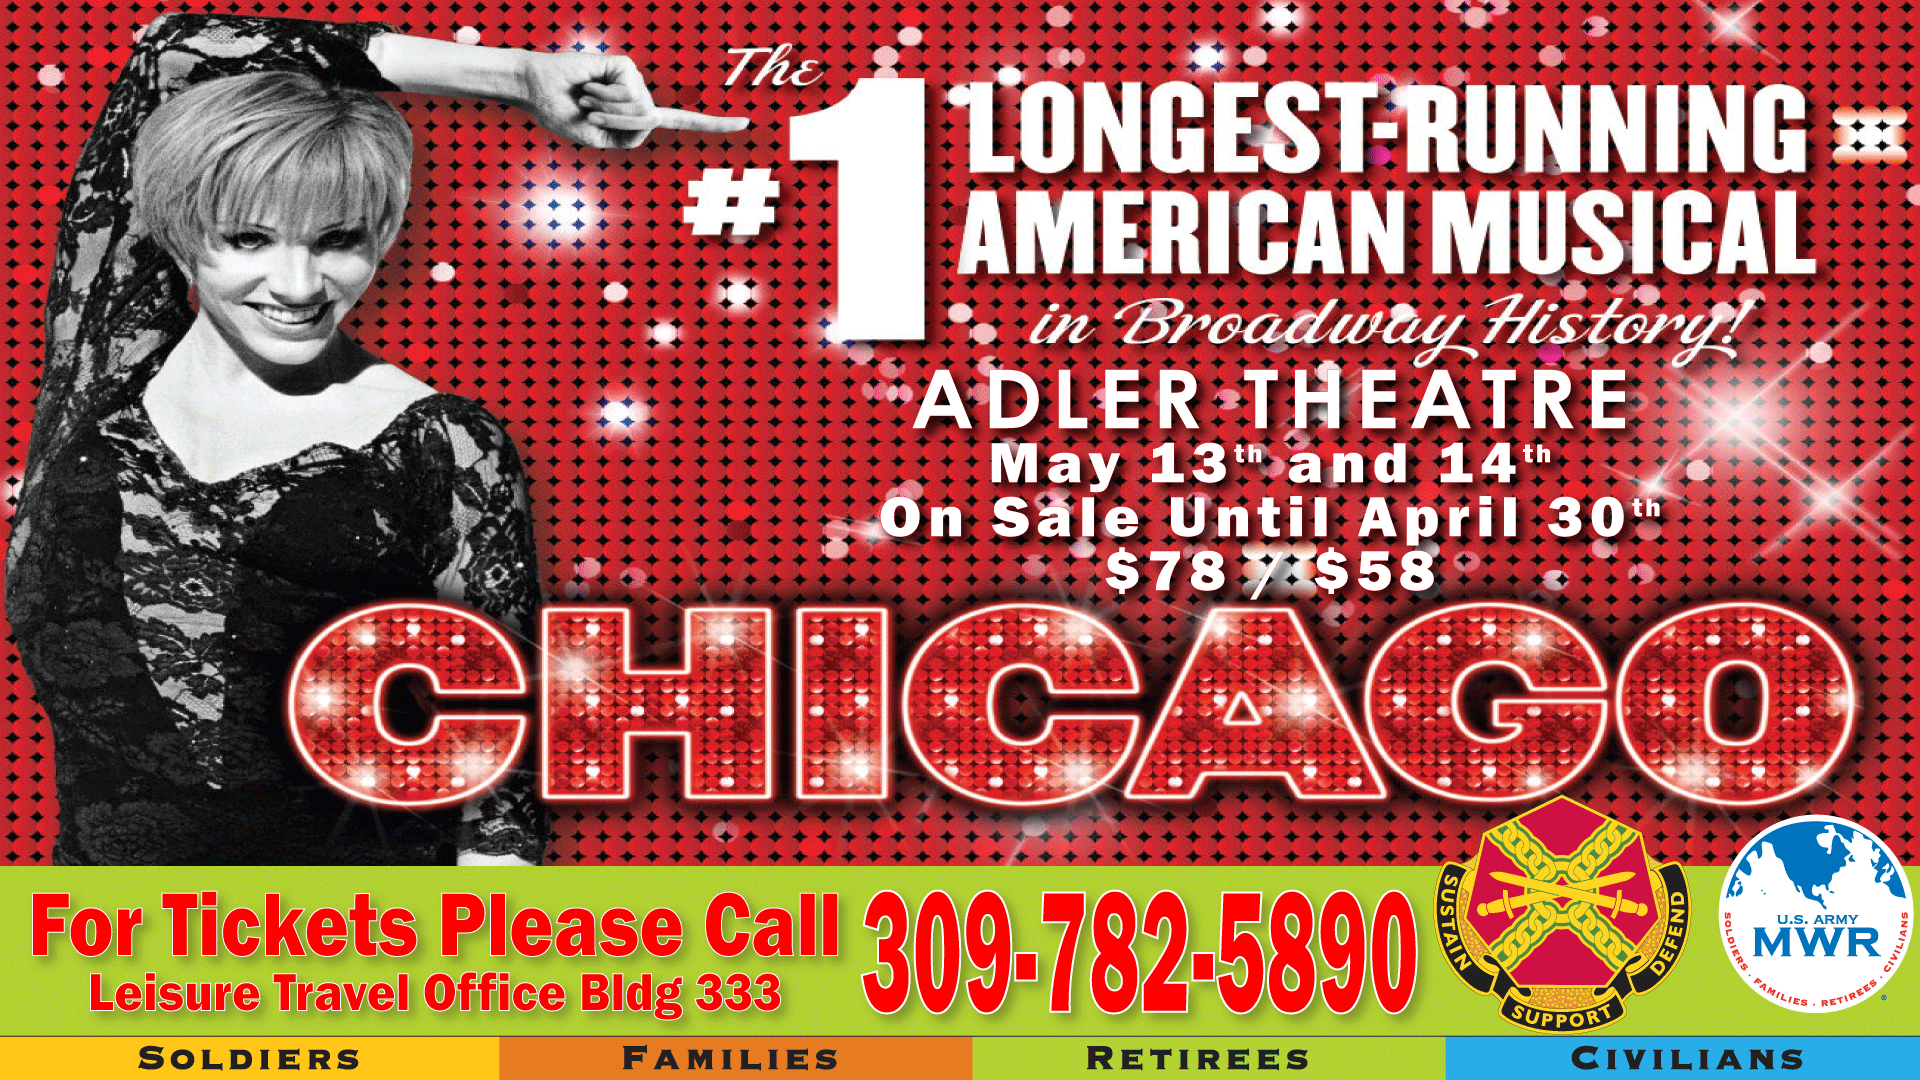 Chicago @ the Adler